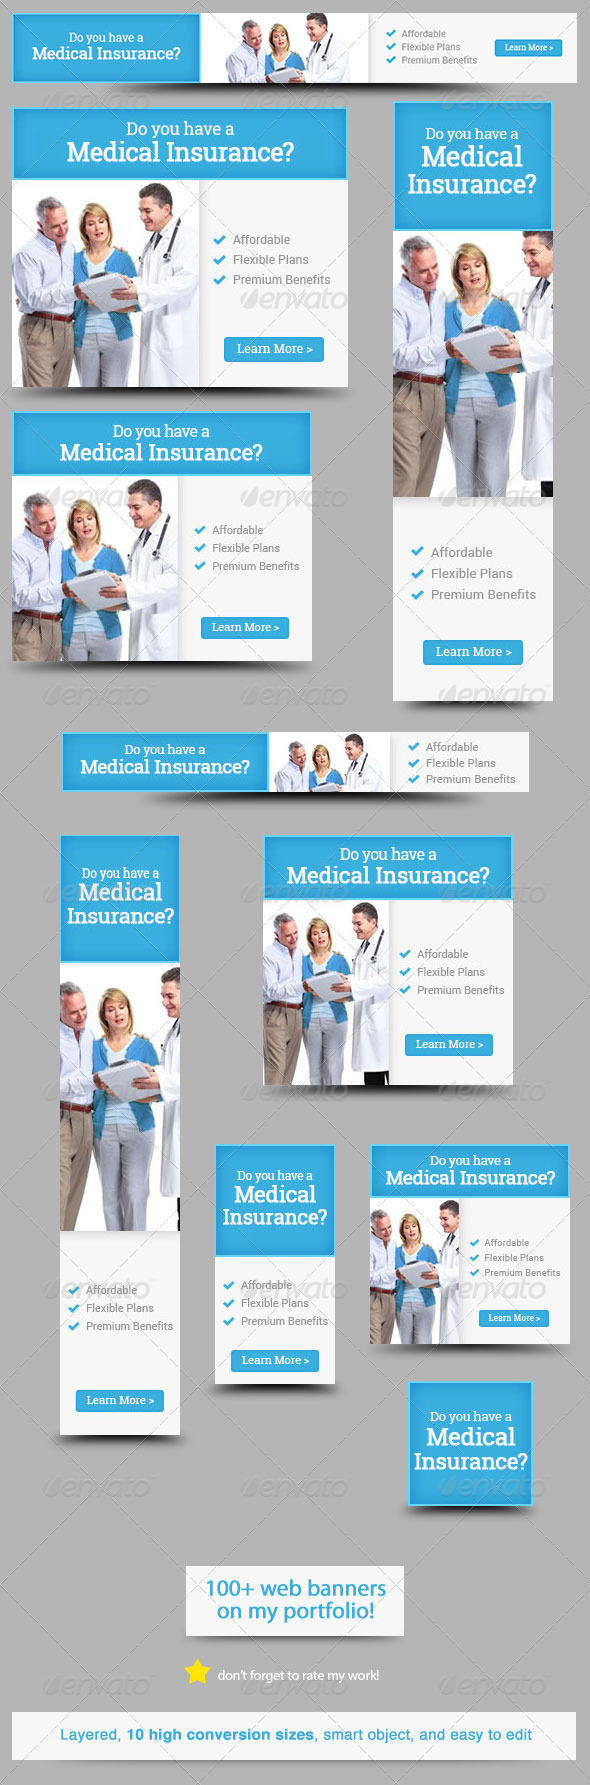 GraphicRiver Medical Insurance Web Banner Design 5767479